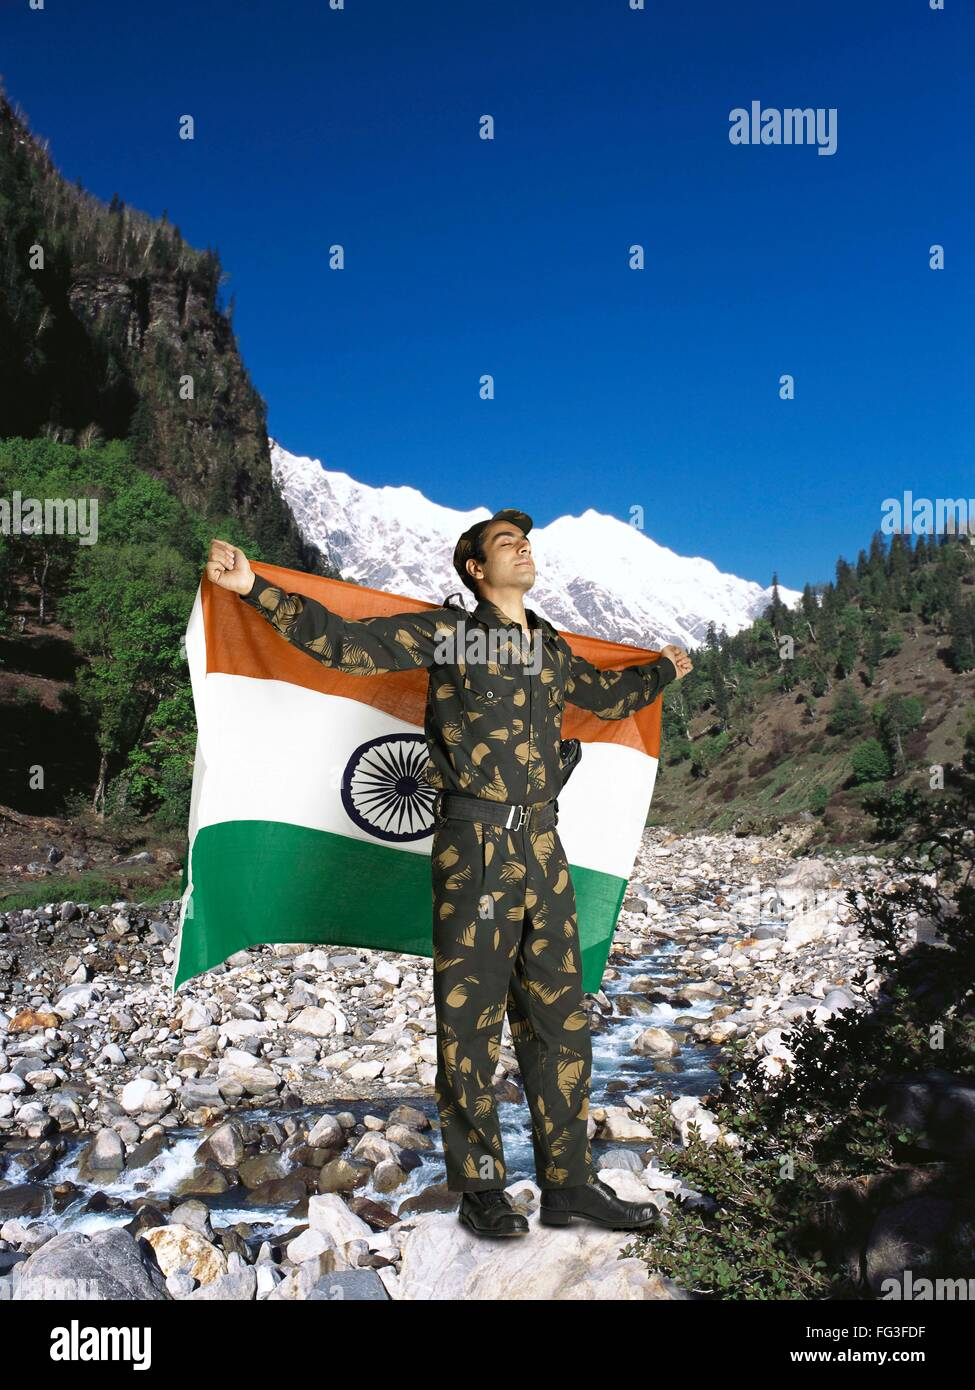 Indian army soldier holding national flag on his backside mountain in background MR Stock Photo